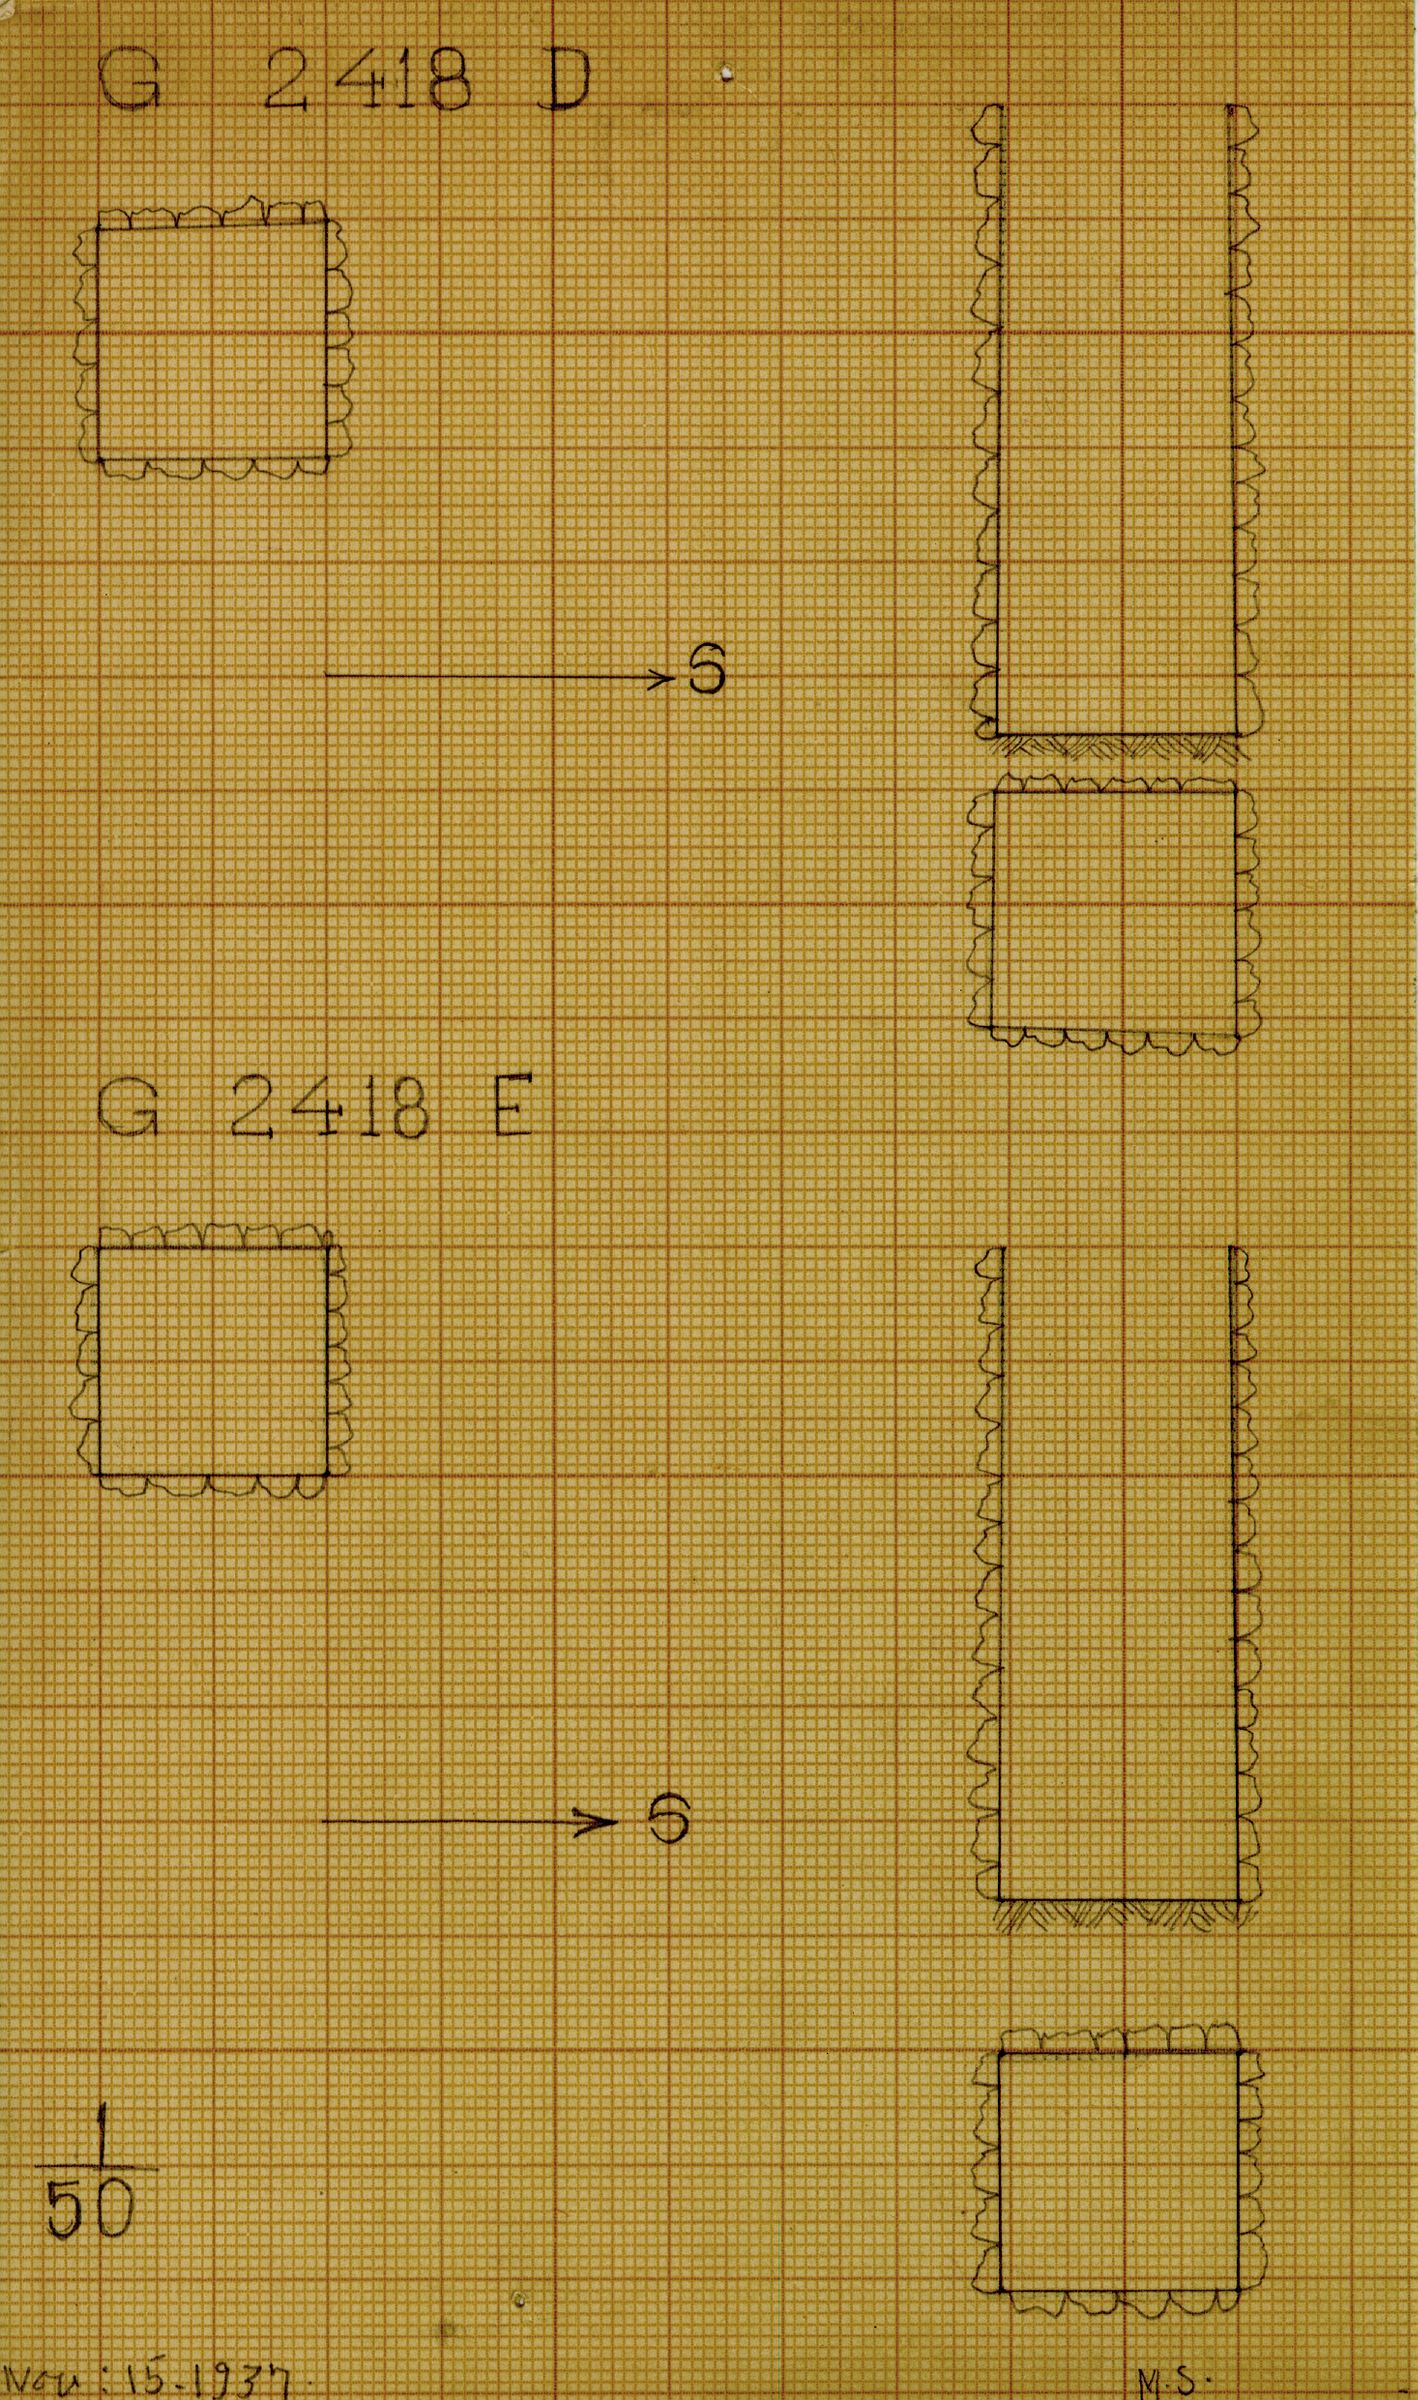 Maps and plans: G 2418, Shaft D and E